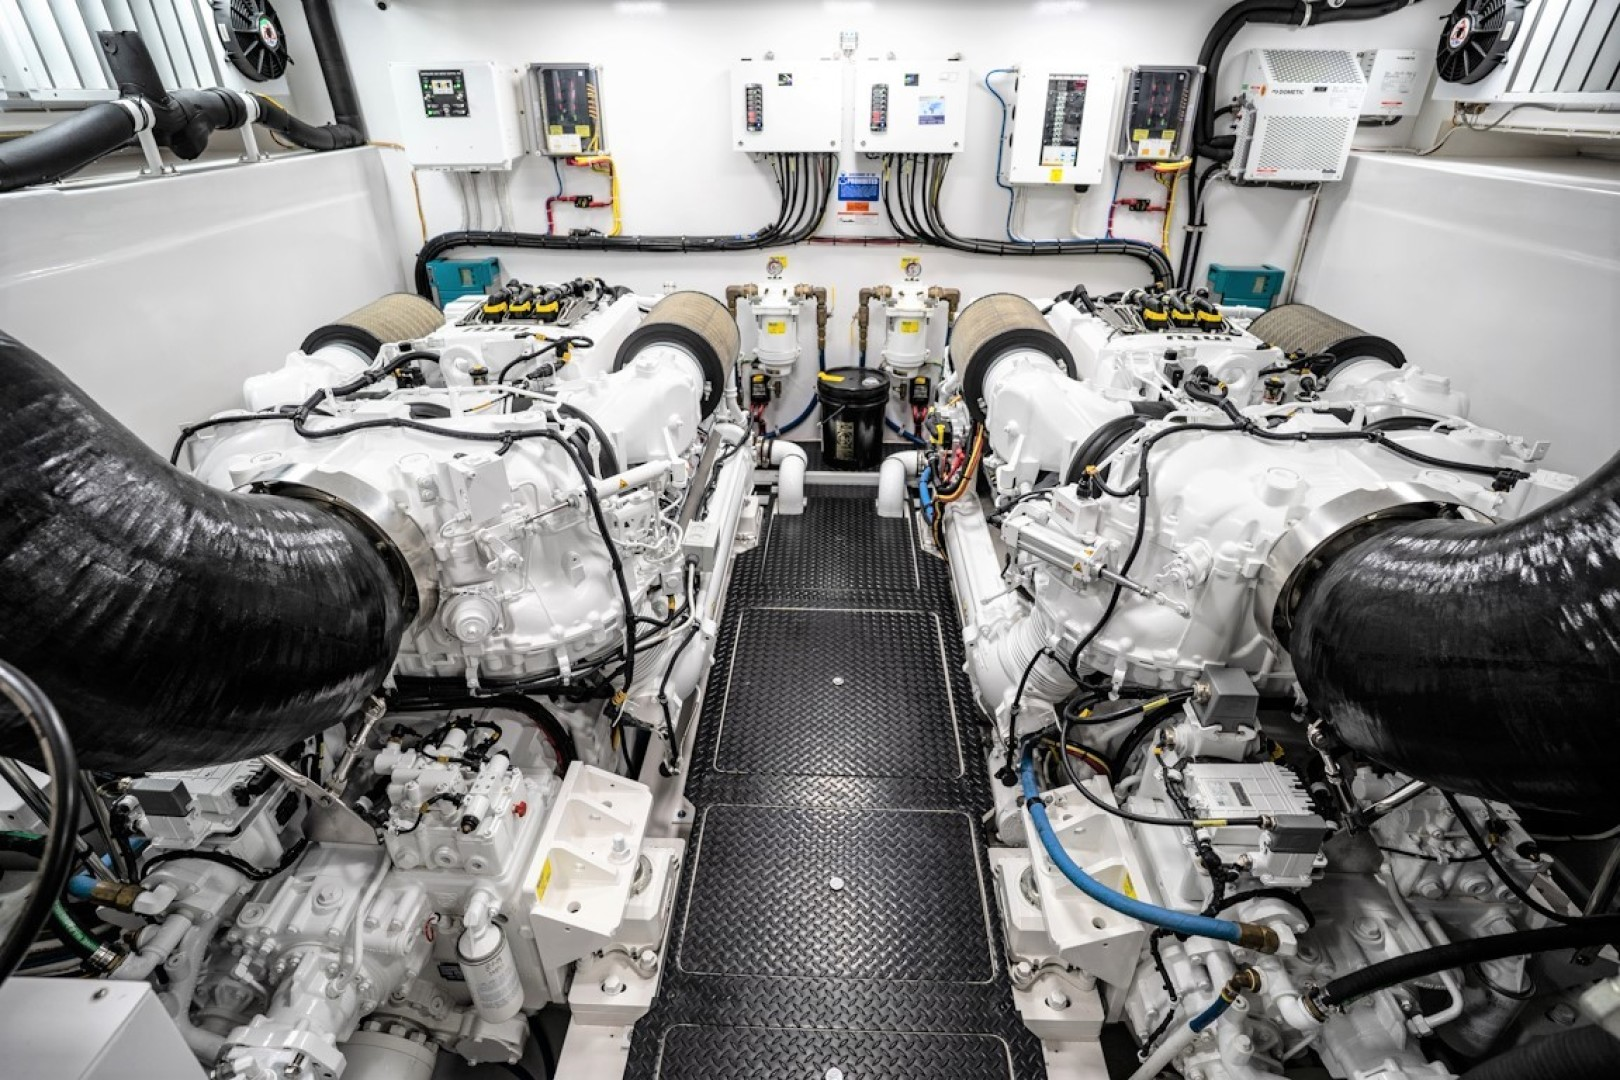 Viking-82 Cockpit MY 2019-Make It Happen Sanibel -Florida-United States-Viking 82CPMY Make It Happen Engine Room-1422519 | Thumbnail